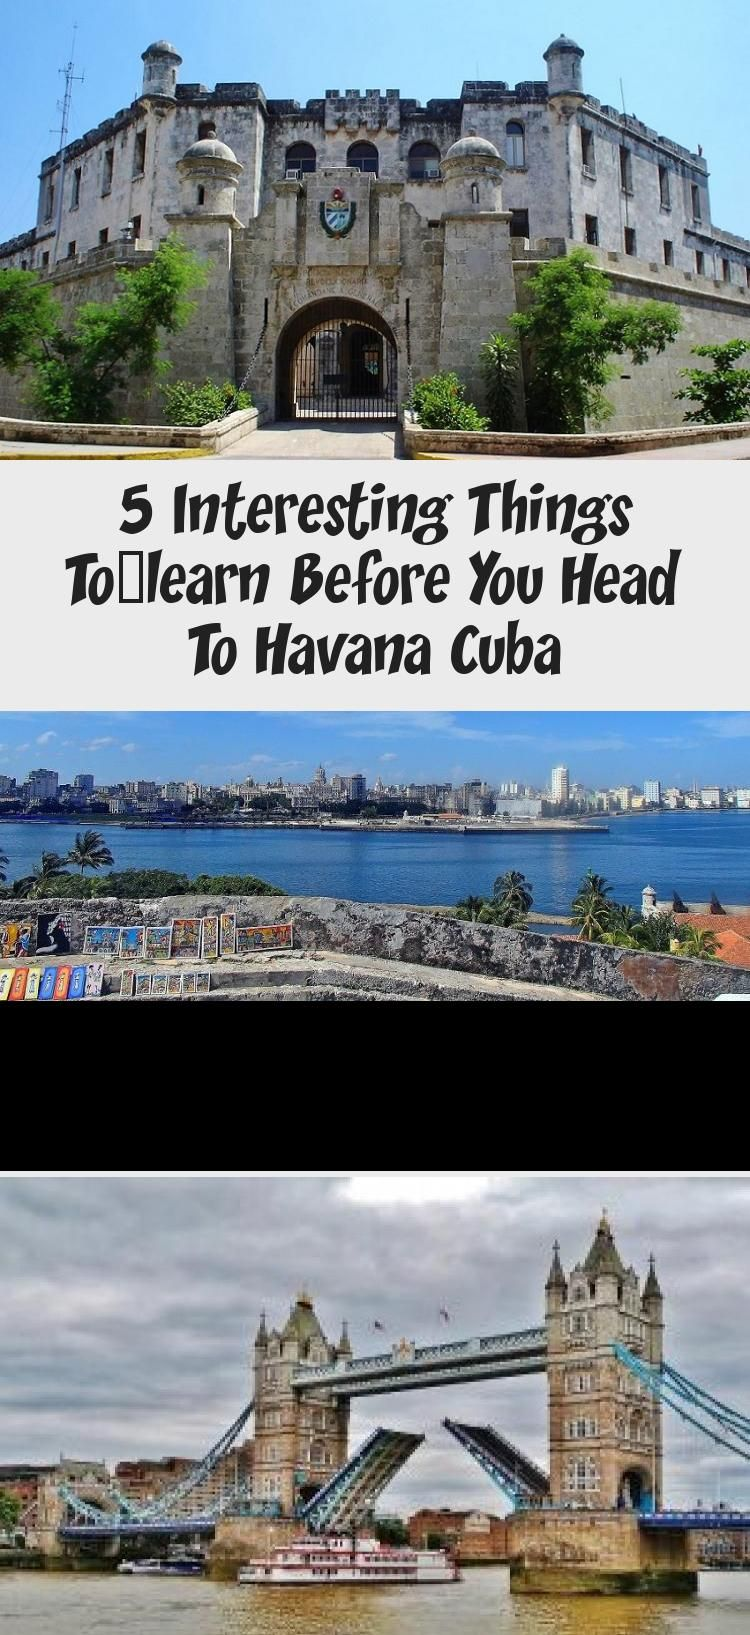 5 Interesting Things Tolearn Before You Head To Havana Cuba – Cars